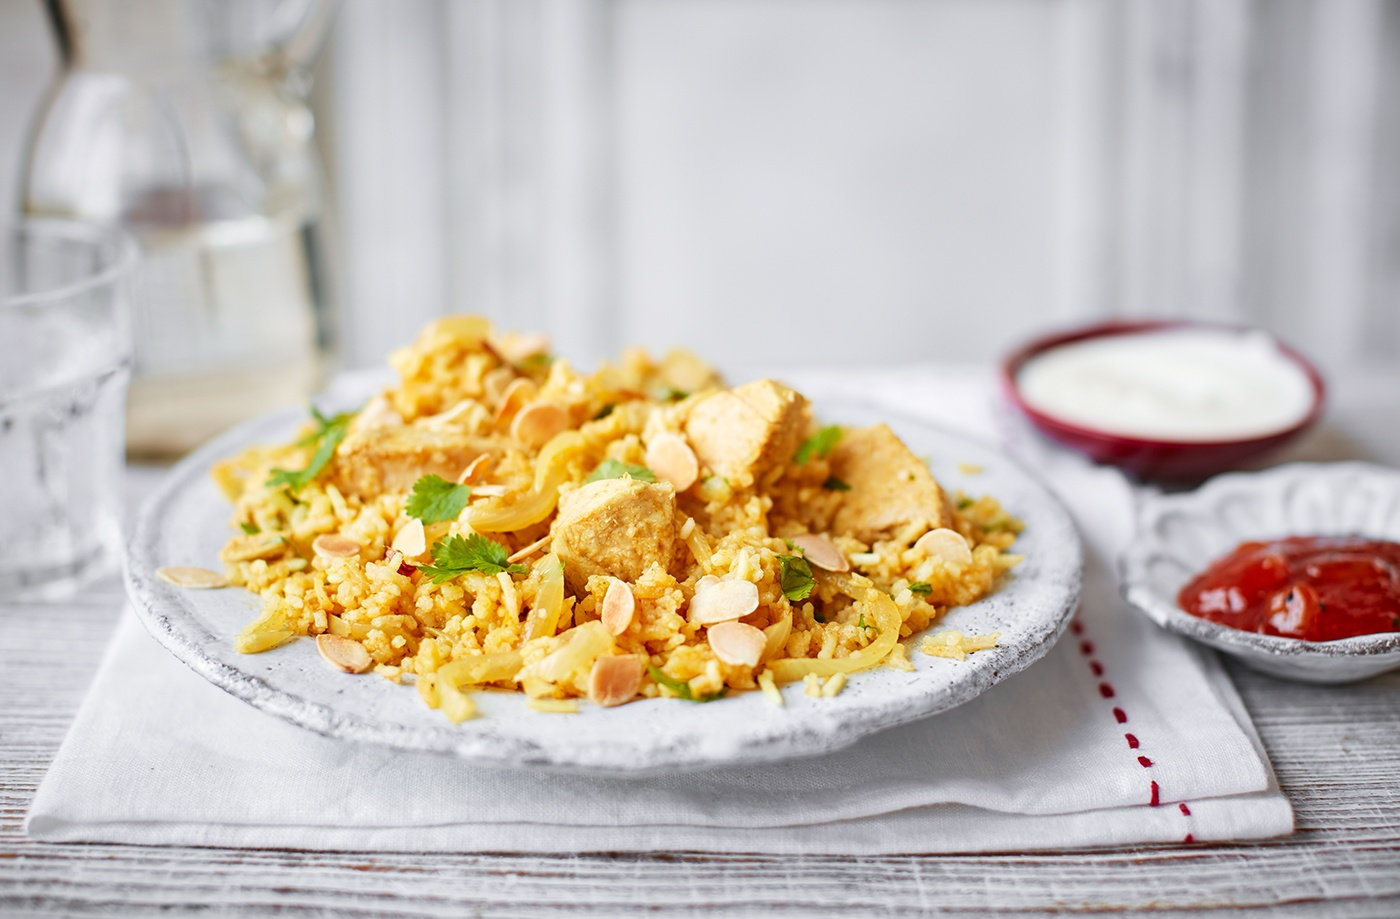 Leftover turkey biryani recipe